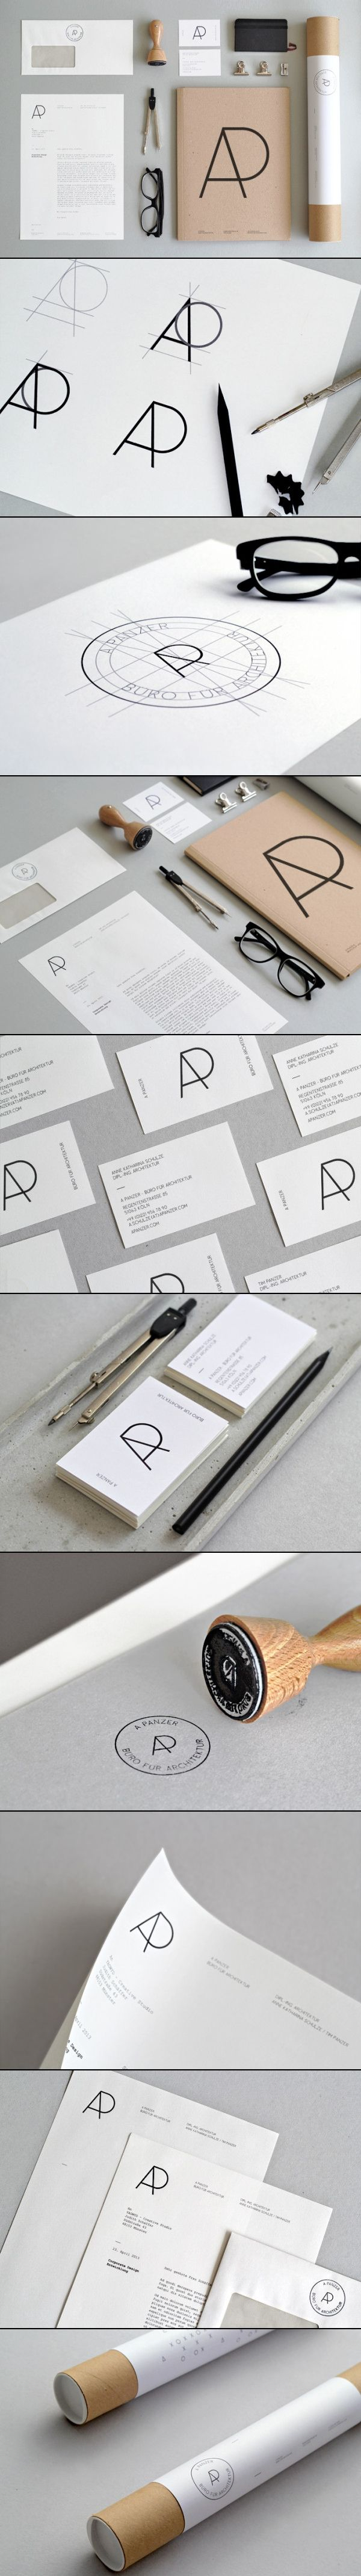 a panzer büro für architektur personal identity simple logos and initials